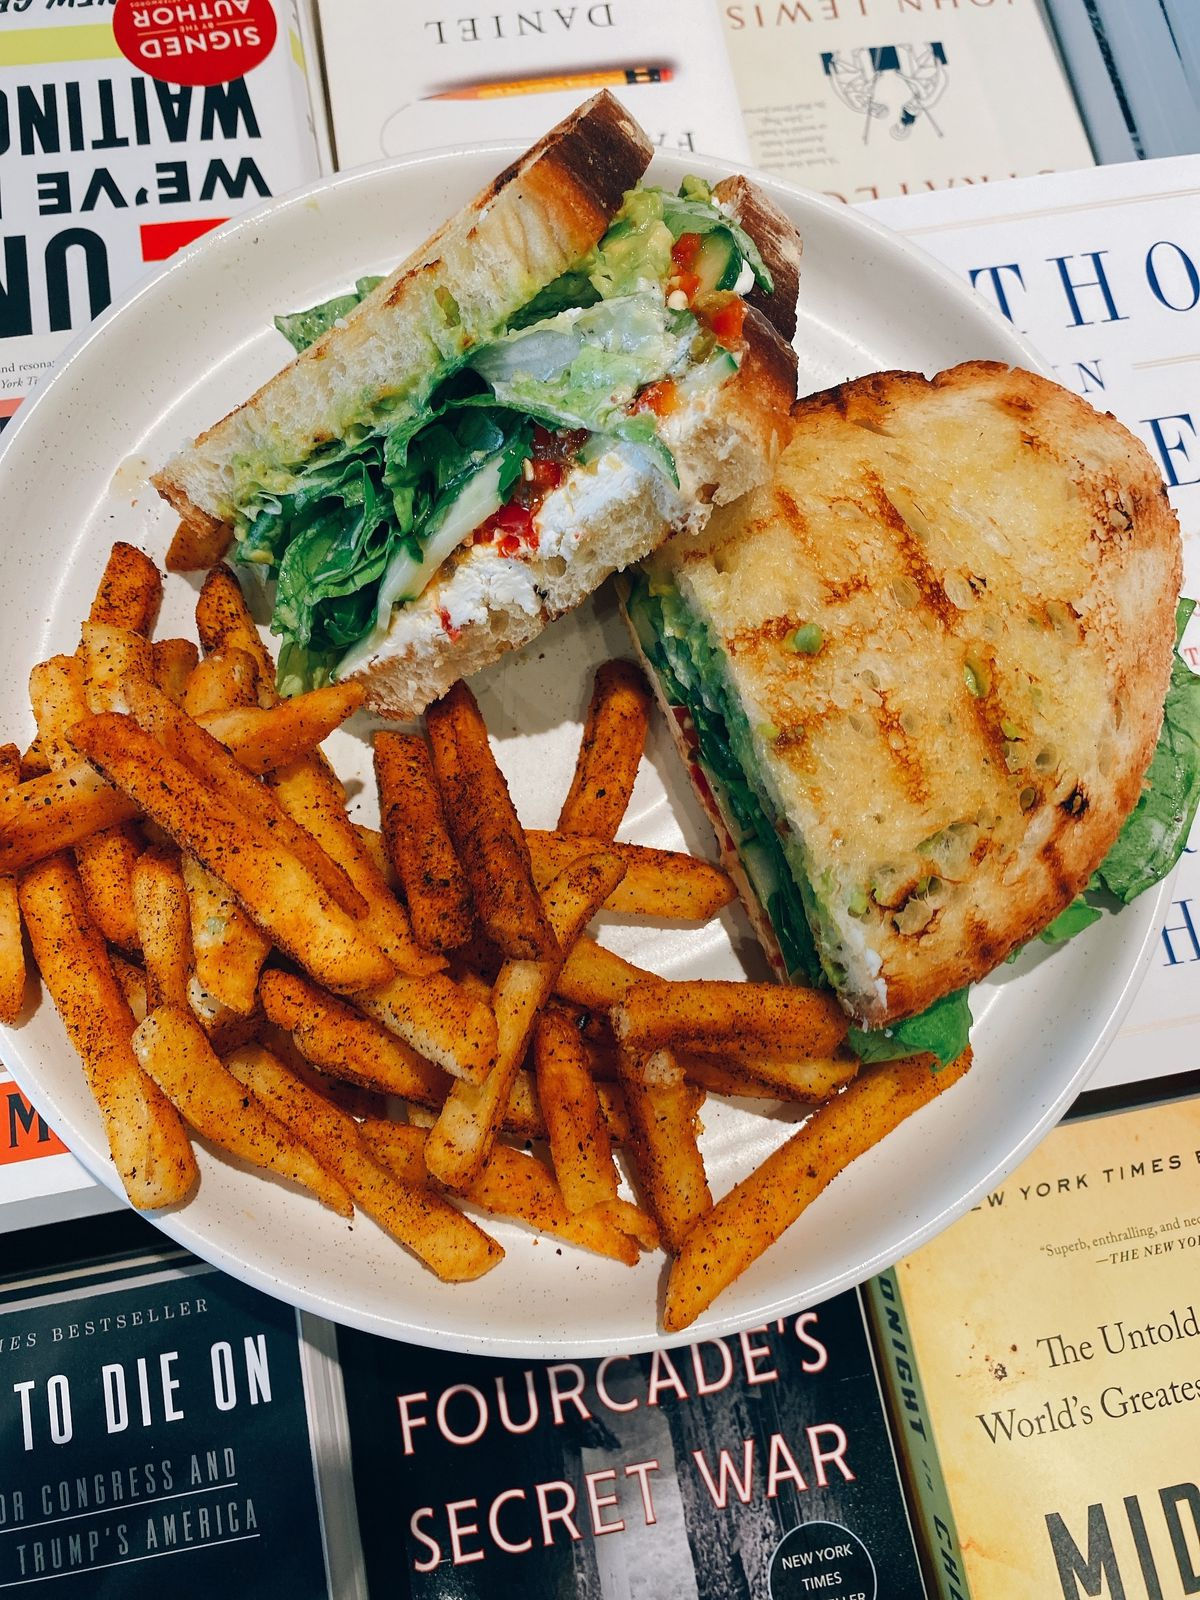 A vegtarian Cali Dagwood sandwich with goat cheese and cherry pepper relish from All Day